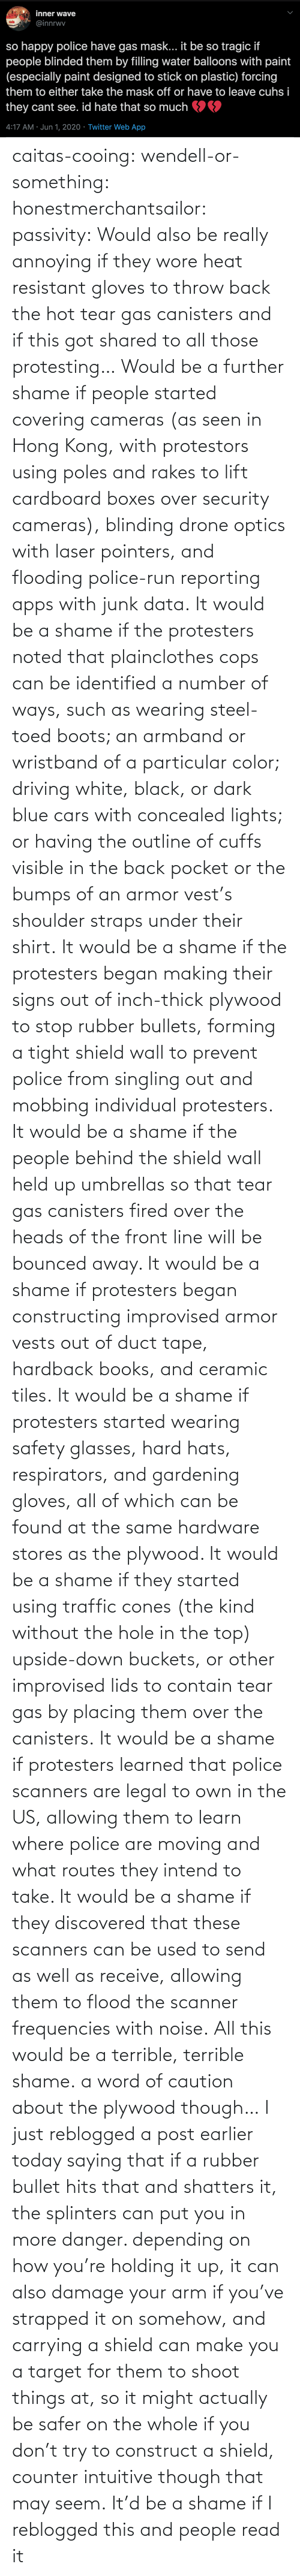 hard: caitas-cooing:  wendell-or-something: honestmerchantsailor:  passivity: Would also be really annoying if they wore heat resistant gloves to throw back the hot tear gas canisters and if this got shared to all those protesting… Would be a further shame if people started covering cameras (as seen in Hong Kong, with protestors using poles and rakes to lift cardboard boxes over security cameras), blinding drone optics with laser pointers, and flooding police-run reporting apps with junk data. It would be a shame if the protesters noted that plainclothes cops can be identified a number of ways, such as wearing steel-toed boots; an armband or wristband of a particular color; driving white, black, or dark blue cars with concealed lights; or having the outline of cuffs visible in the back pocket or the bumps of an armor vest's shoulder straps under their shirt. It would be a shame if the protesters began making their signs out of inch-thick plywood to stop rubber bullets, forming a tight shield wall to prevent police from singling out and mobbing individual protesters. It would be a shame if the people behind the shield wall held up umbrellas so that tear gas canisters fired over the heads of the front line will be bounced away. It would be a shame if protesters began constructing improvised armor vests out of duct tape, hardback books, and ceramic tiles. It would be a shame if protesters started wearing safety glasses, hard hats, respirators, and gardening gloves, all of which can be found at the same hardware stores as the plywood. It would be a shame if they started using traffic cones (the kind without the hole in the top) upside-down buckets, or other improvised lids to contain tear gas by placing them over the canisters. It would be a shame if protesters learned that police scanners are legal to own in the US, allowing them to learn where police are moving and what routes they intend to take. It would be a shame if they discovered that these scanners can be used to send as well as receive, allowing them to flood the scanner frequencies with noise. All this would be a terrible, terrible shame.    a word of caution about the plywood though… I just reblogged a post earlier today saying that if a rubber bullet hits that and shatters it, the splinters can put you in more danger. depending on how you're holding it up, it can also damage your arm if you've strapped it on somehow, and carrying a shield can make you a target for them to shoot things at, so it might actually be safer on the whole if you don't try to construct a shield, counter intuitive though that may seem.    It'd be a shame if I reblogged this and people read it